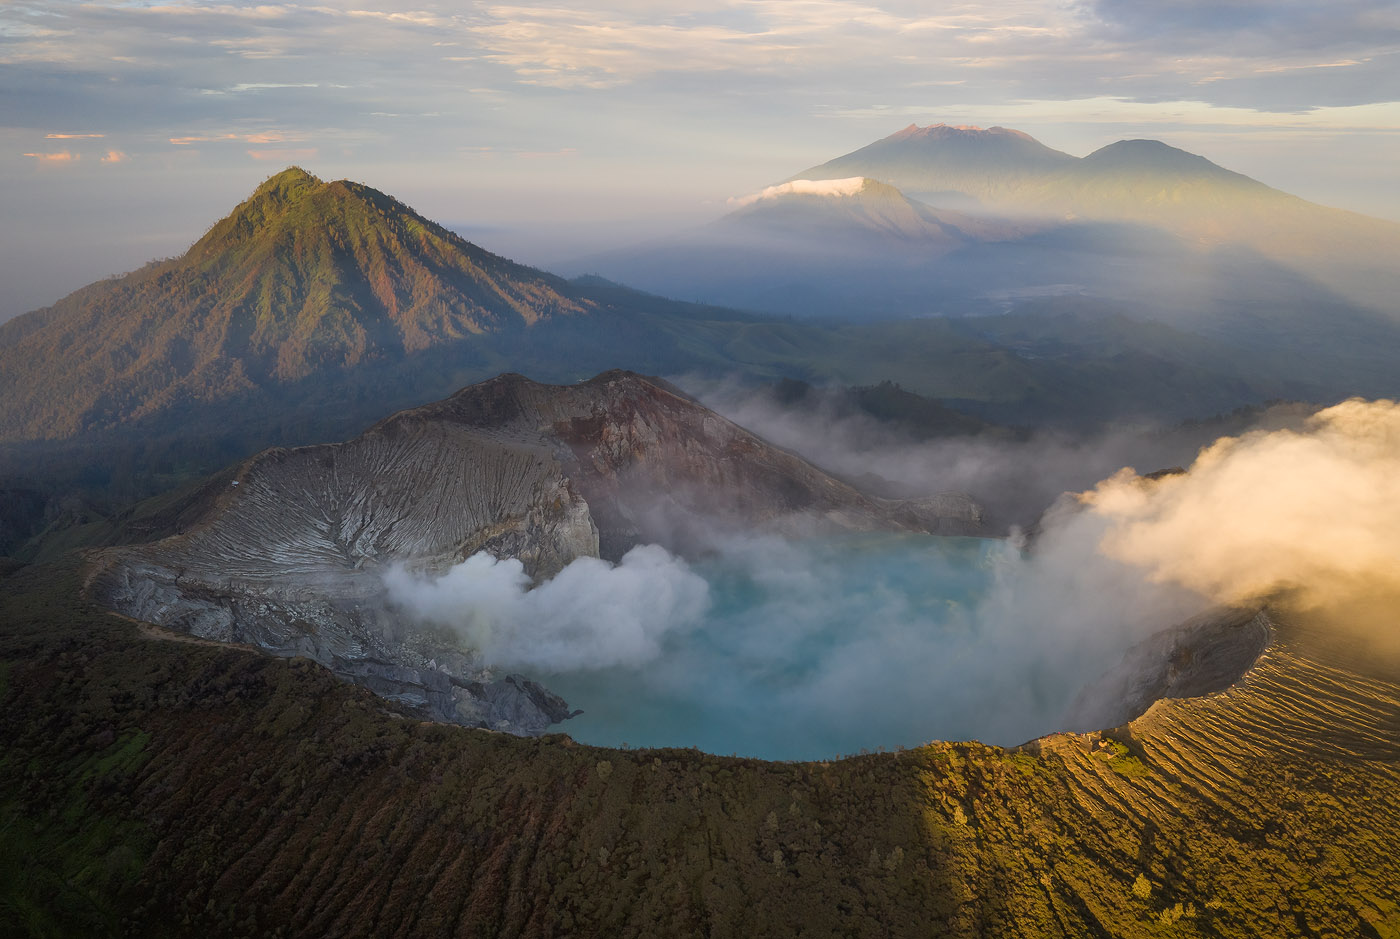 The drone allowed me to separate the 5 volcanoes visible in this image: in the bottom of the frame is Ijen crater. To its left, the lush, green Gunung Ranti. Then farther away, from left to right: Pendil, Raung and Suket. There was even room for the shadow (bottom-left to mid-right) cast by Gunung Merapi, just behind the camera.